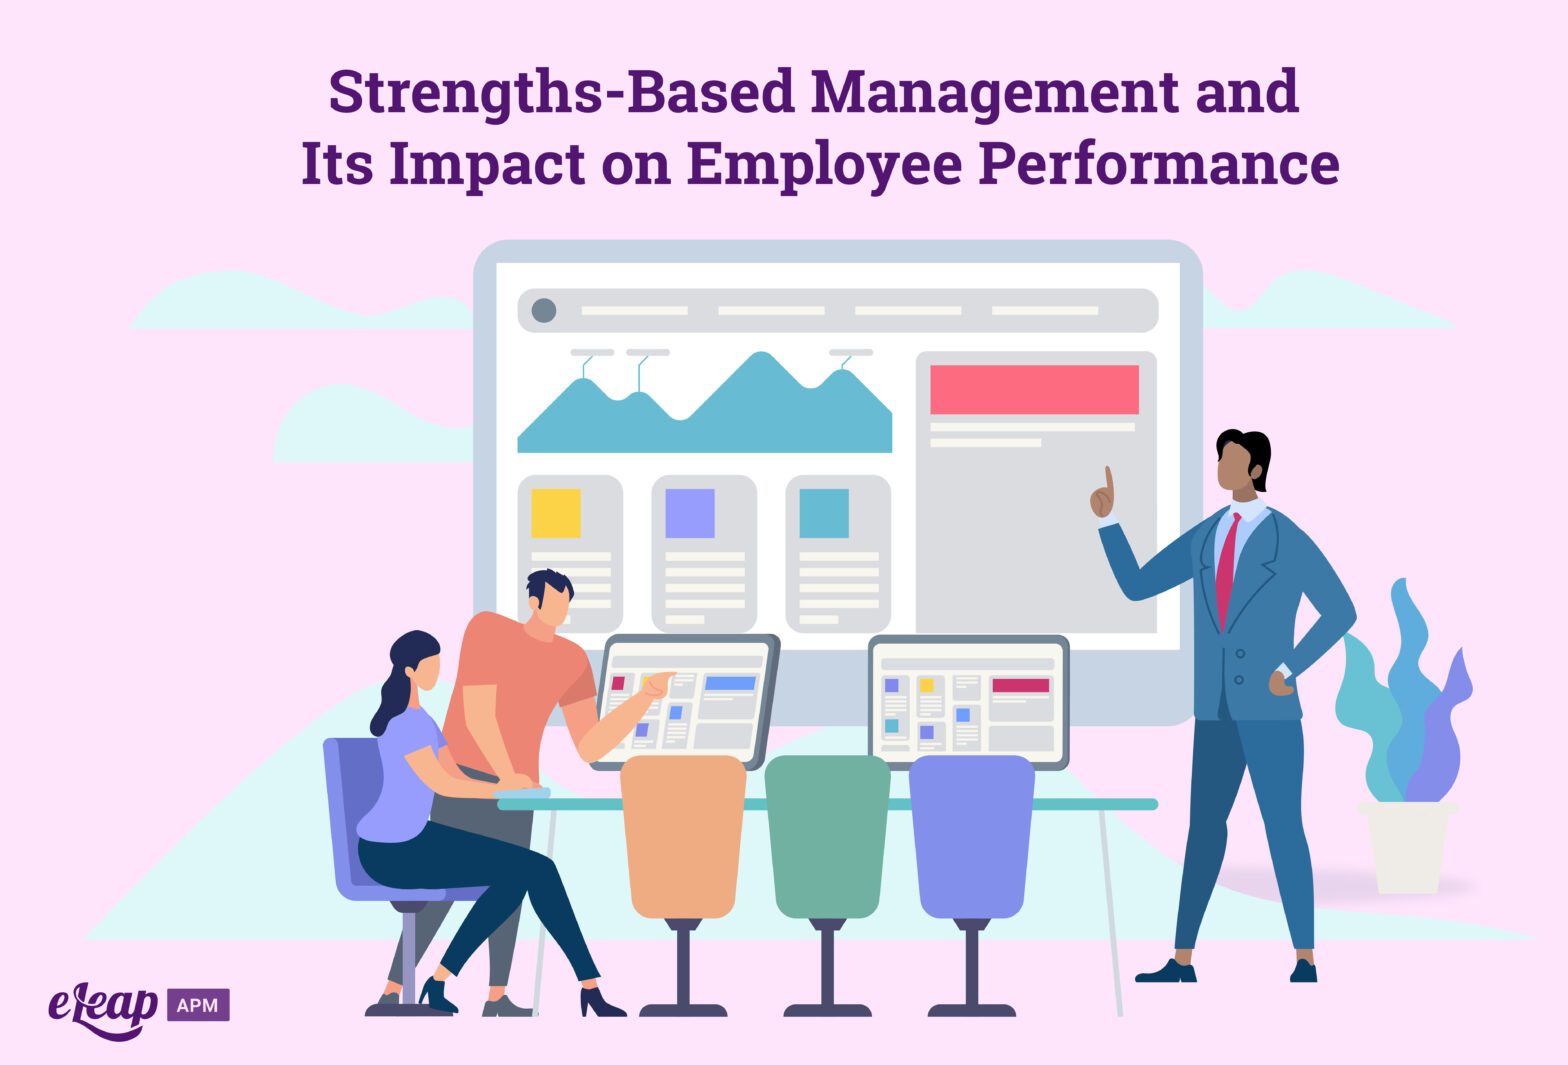 Strengths-Based Management and Its Impact on Employee Performance